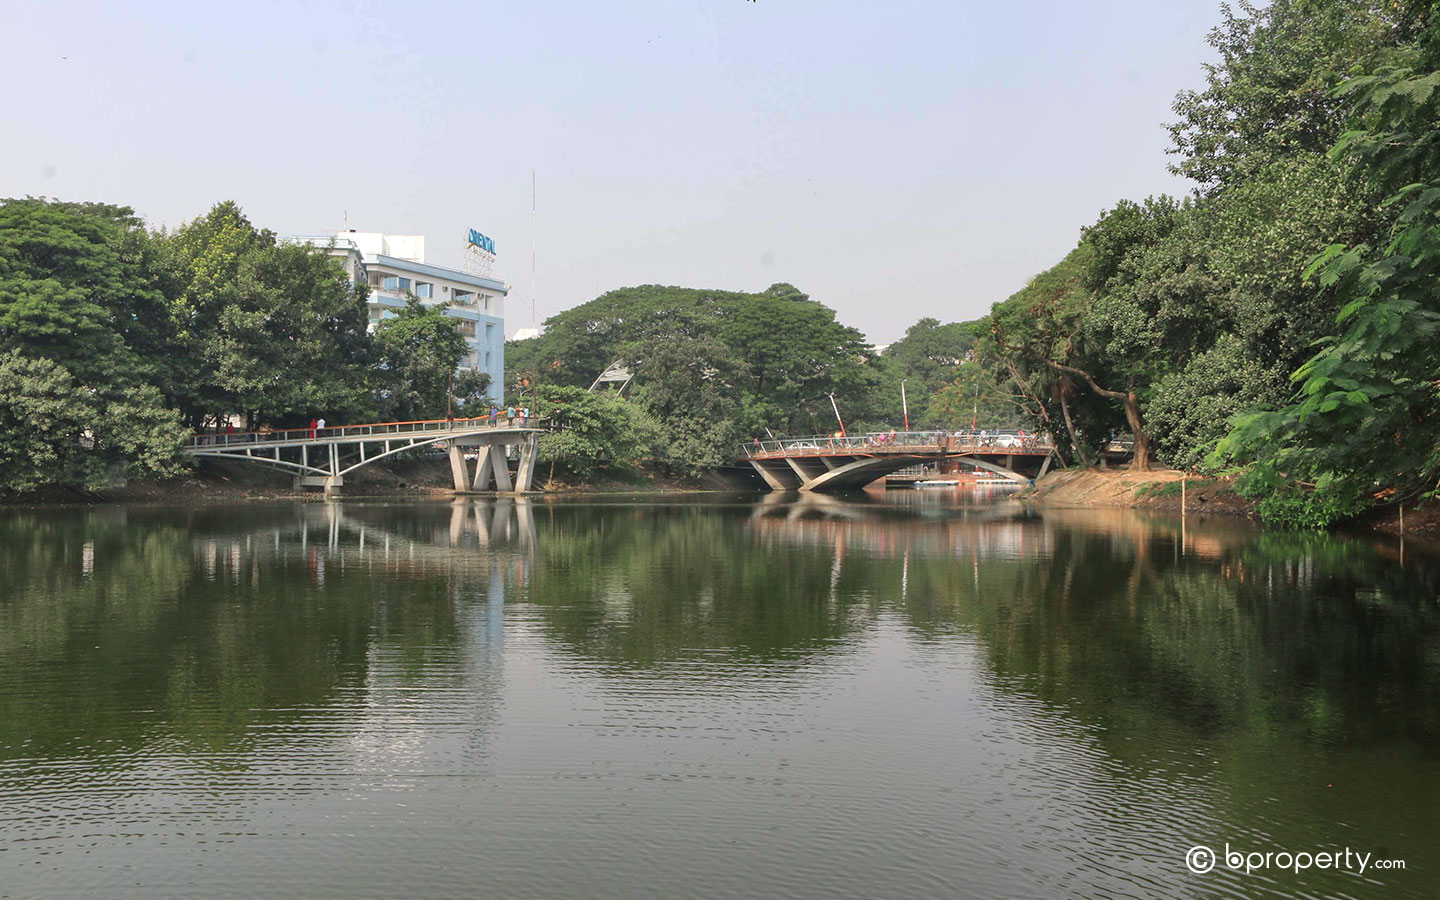 Dhanmondi lake is a common place for outdoor activities